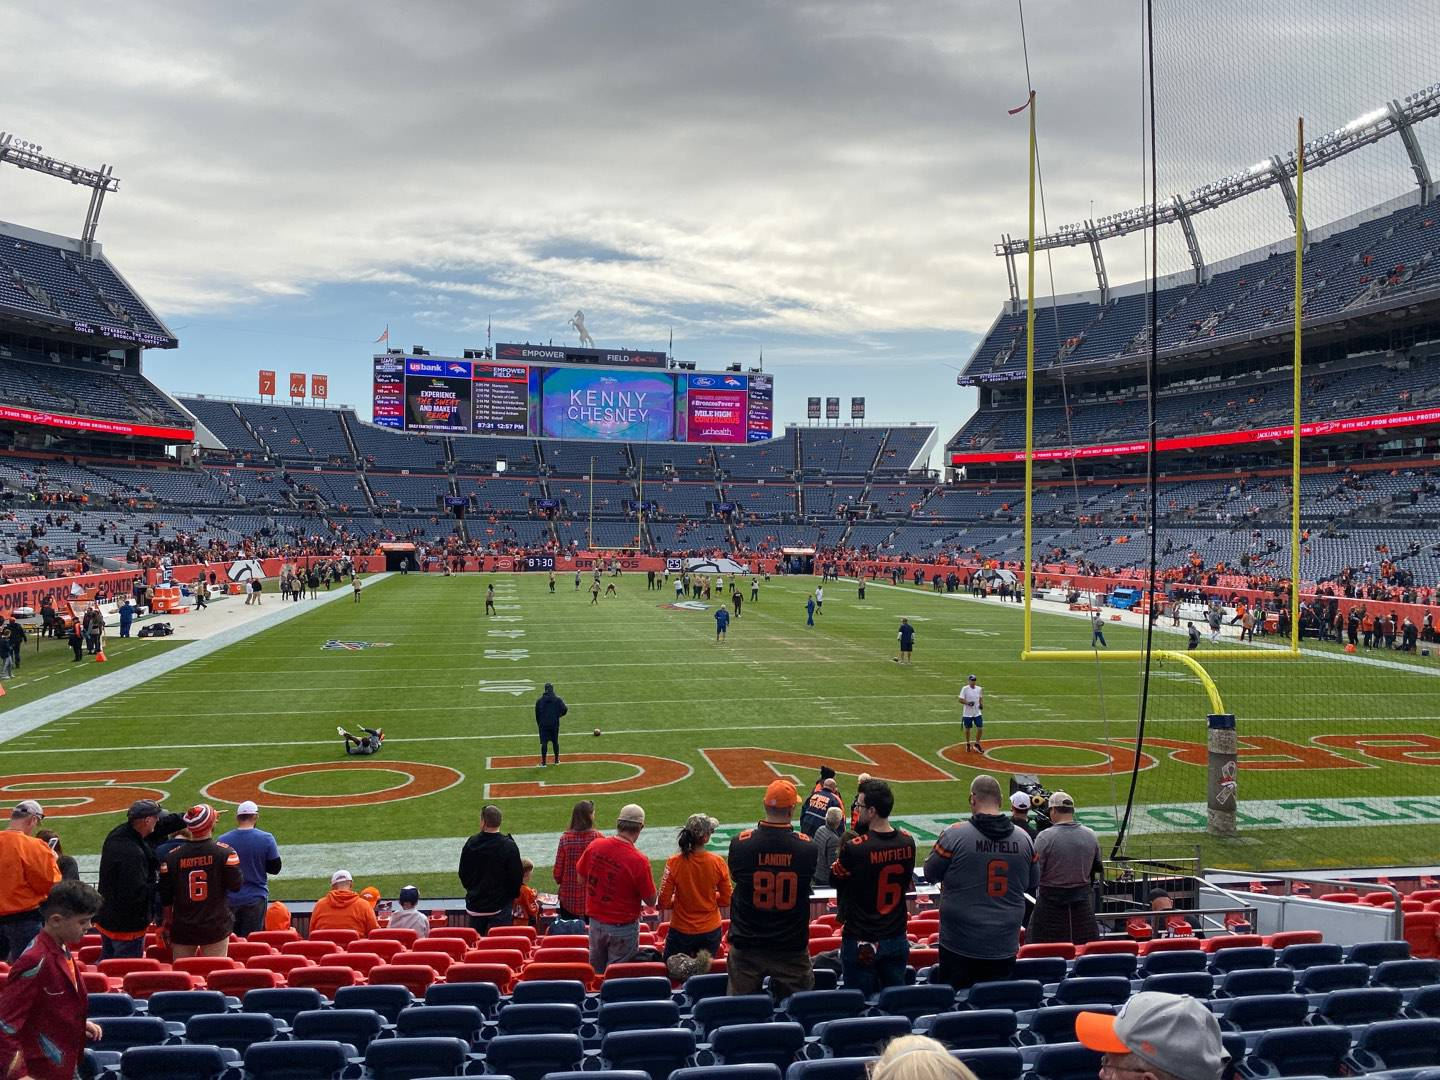 Empower Field at Mile High Stadium Section 115 Row 14 Seat 12